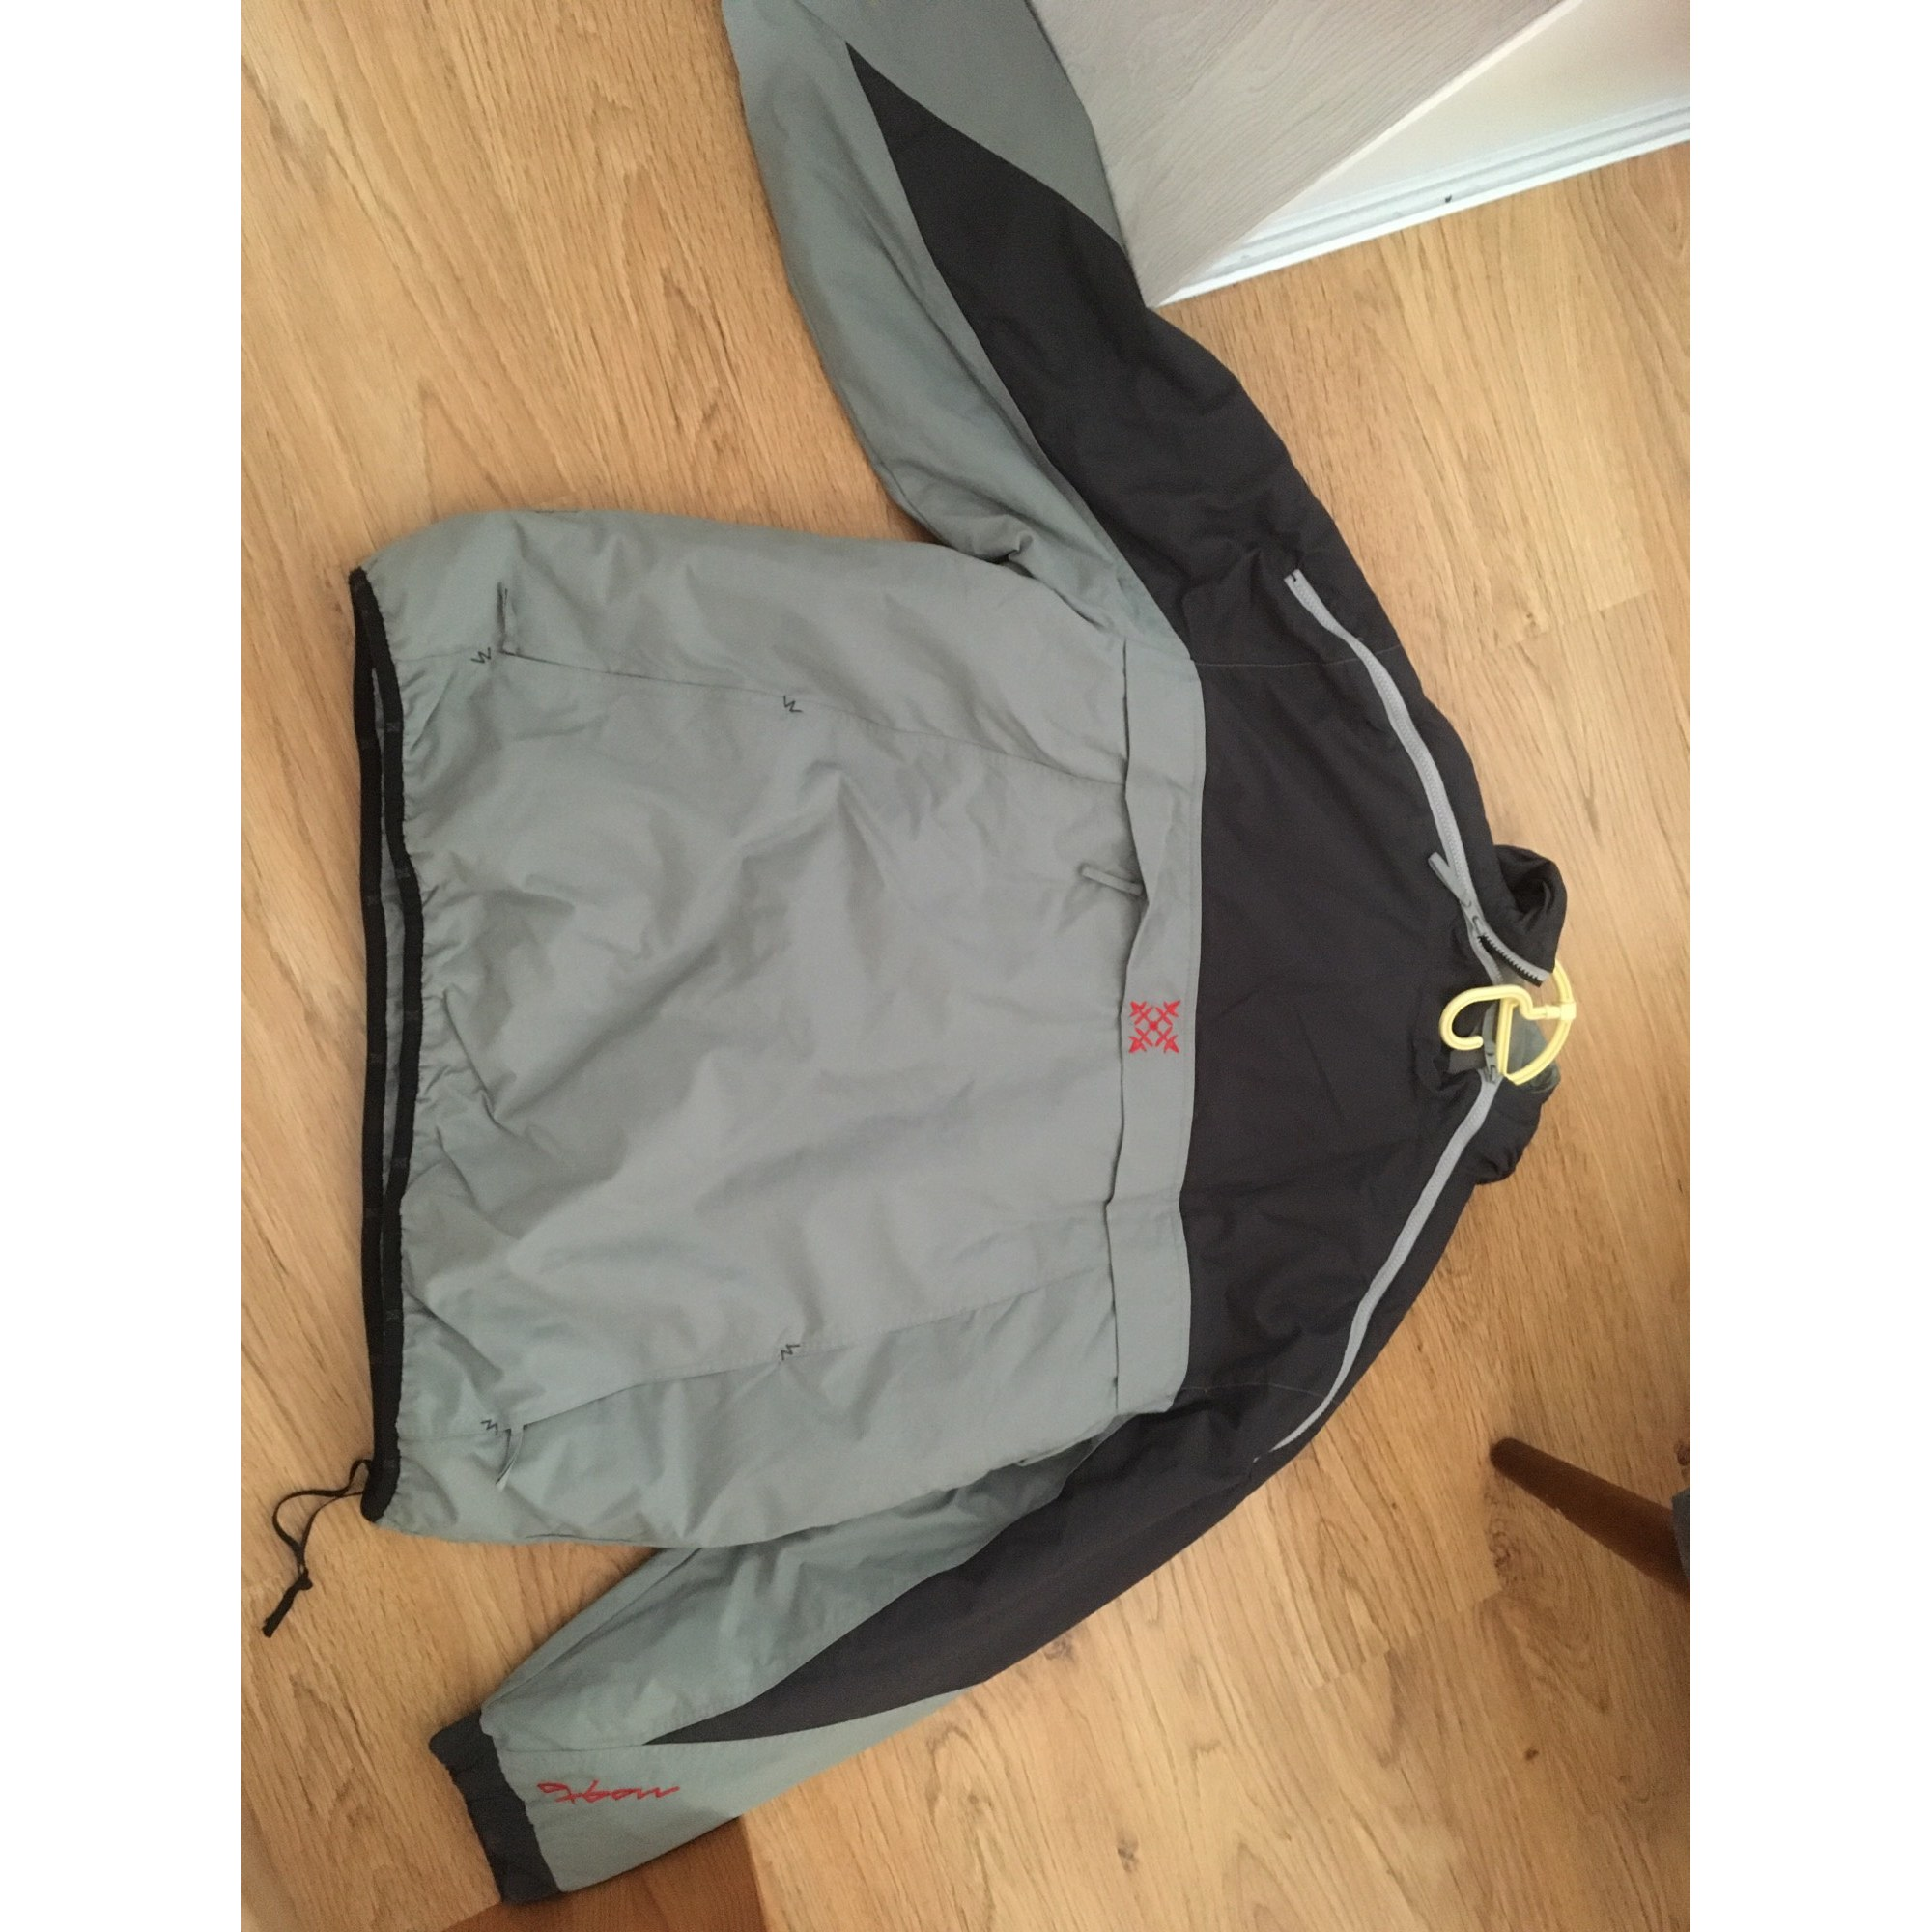 Parka OXBOW Gris, anthracite